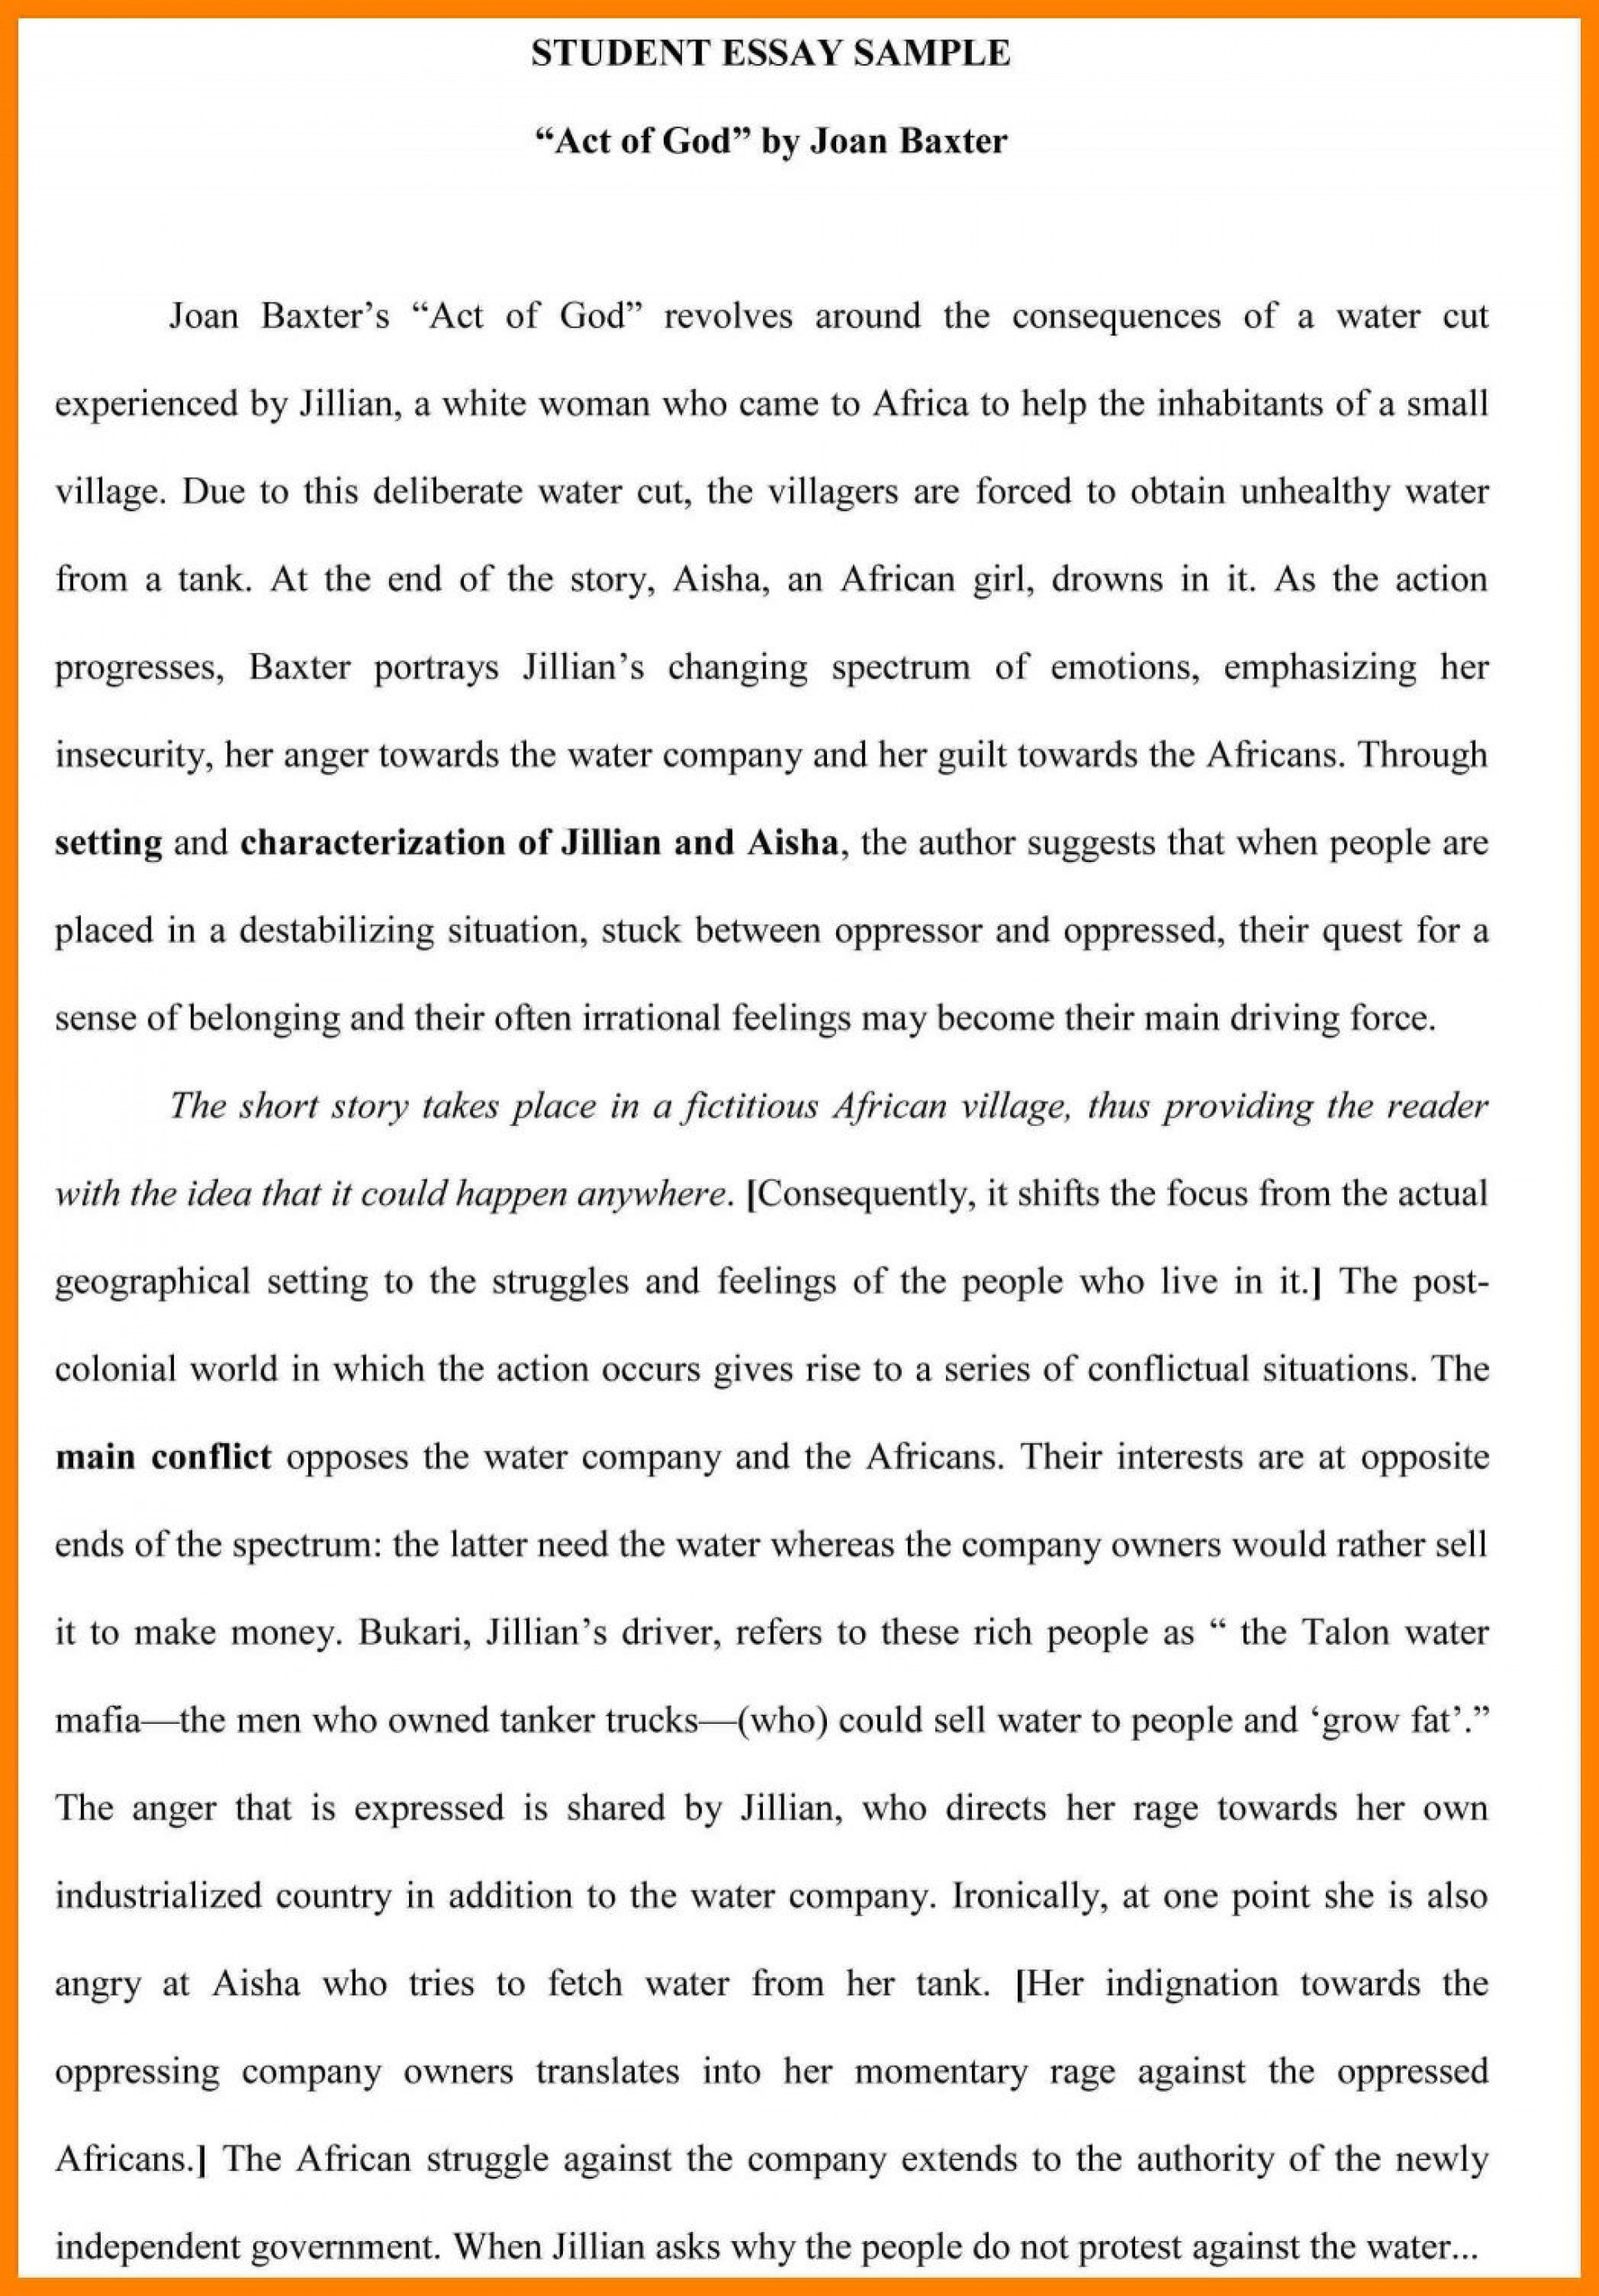 007 Act Practice Essay Example An Professional Homework Editing ...